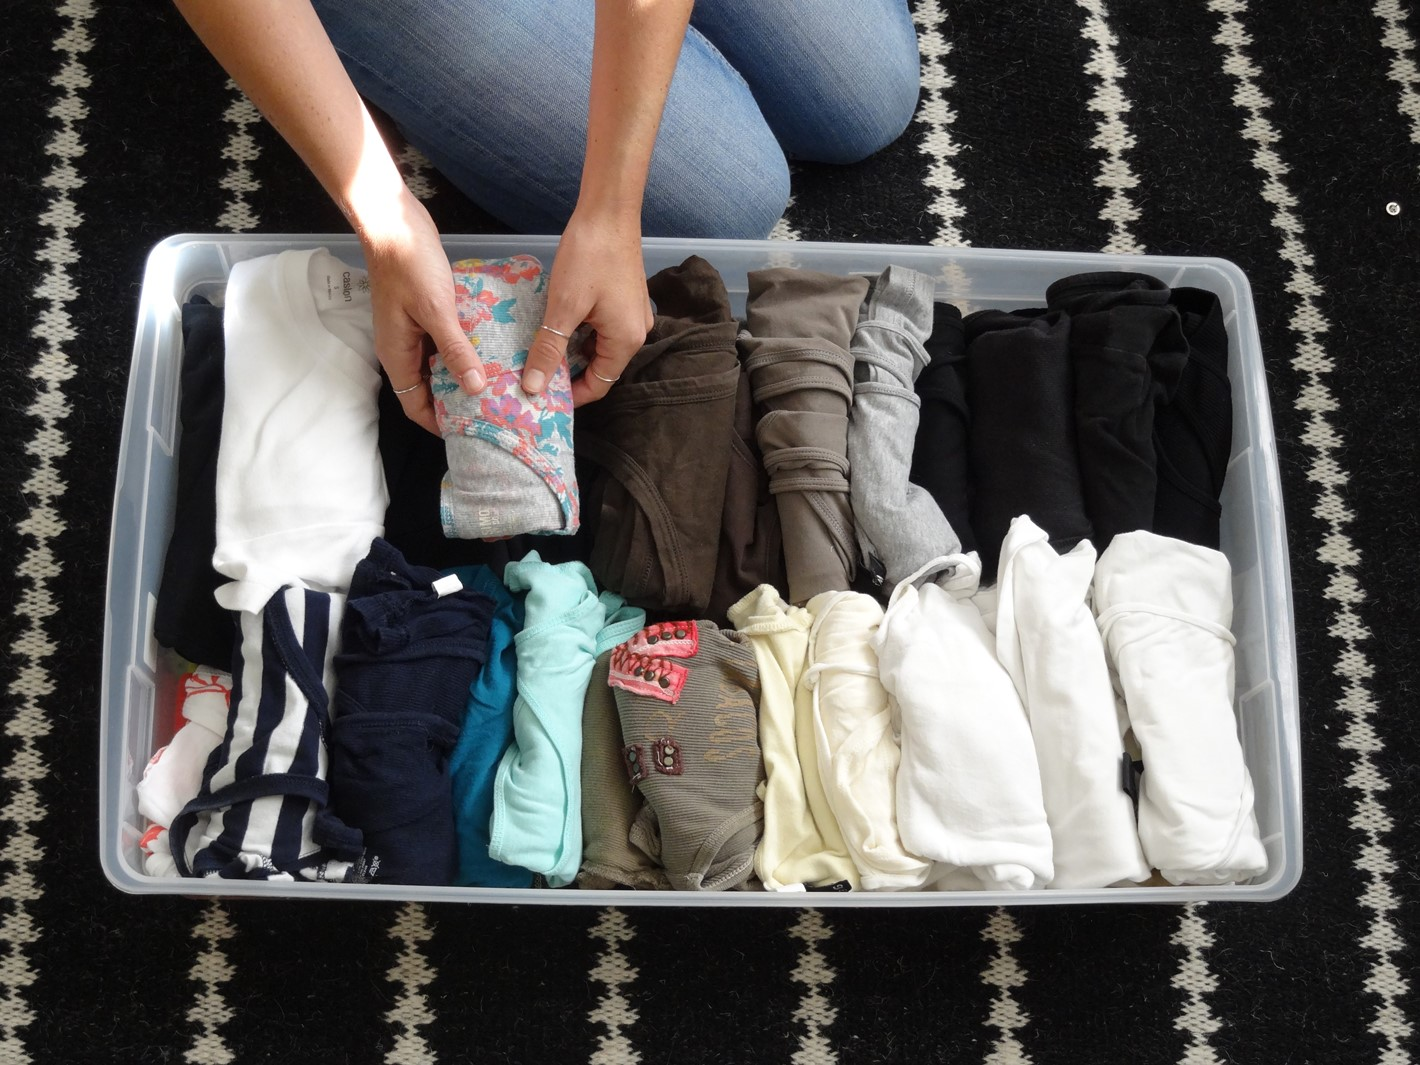 5. How to Increase Closet Organization in 5 Easy Steps